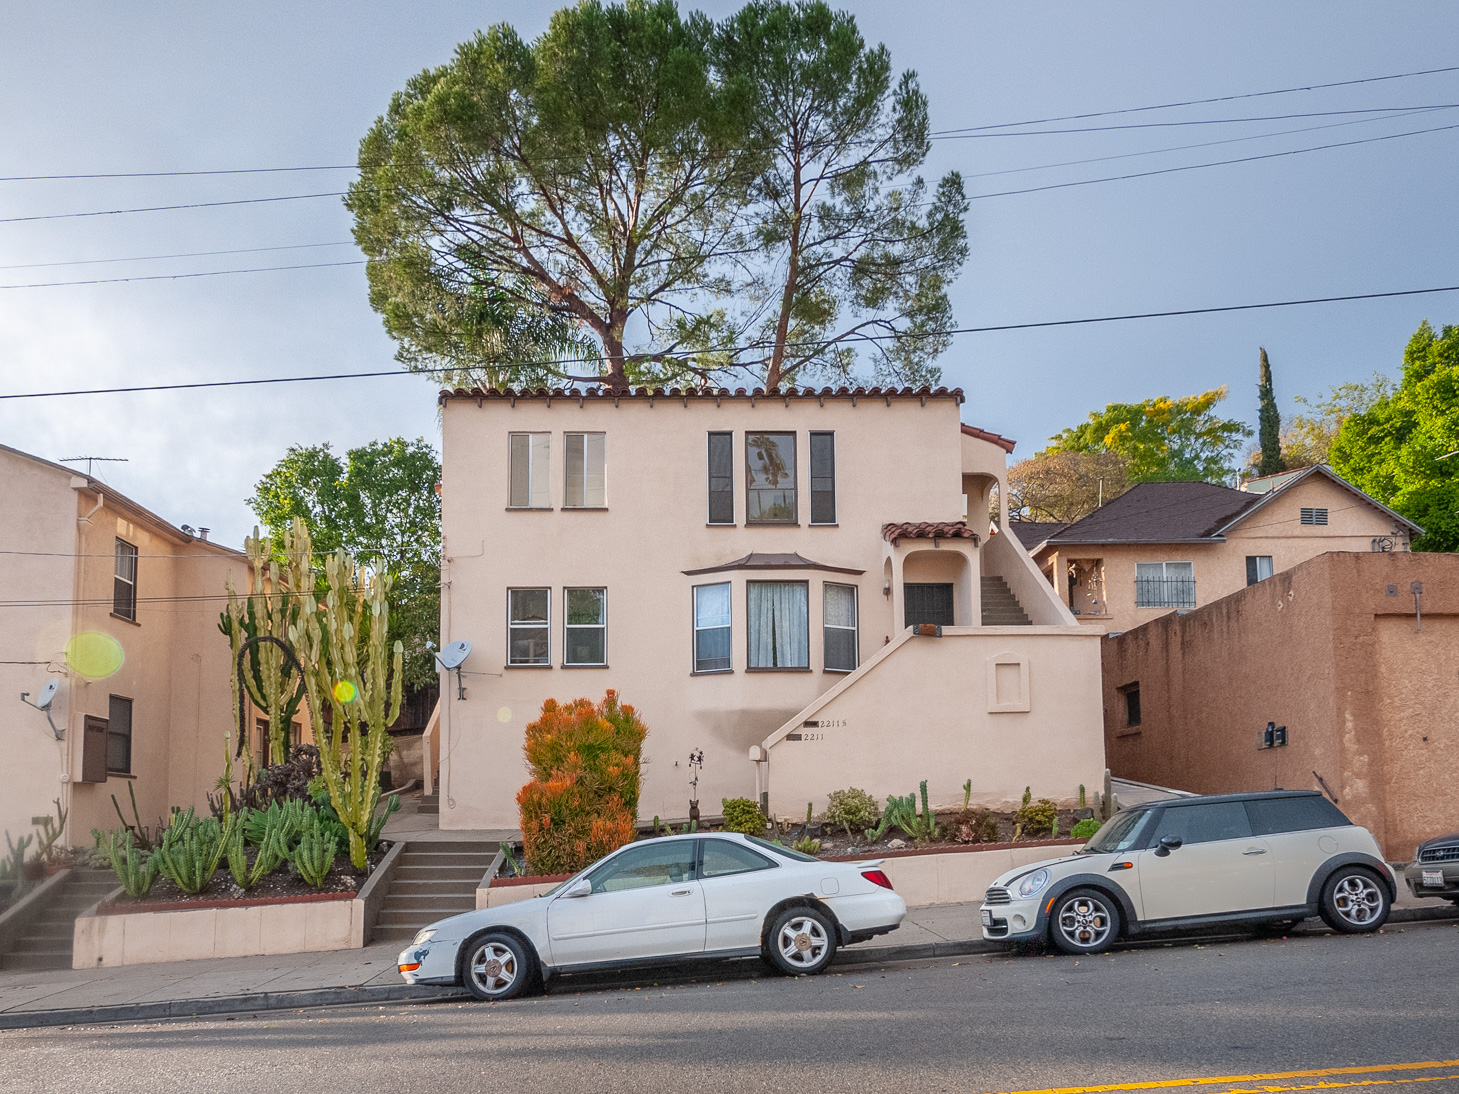 Charming 1930's Spanish Upper | Bright & Airy | Near Echo Park Shops and Cafes